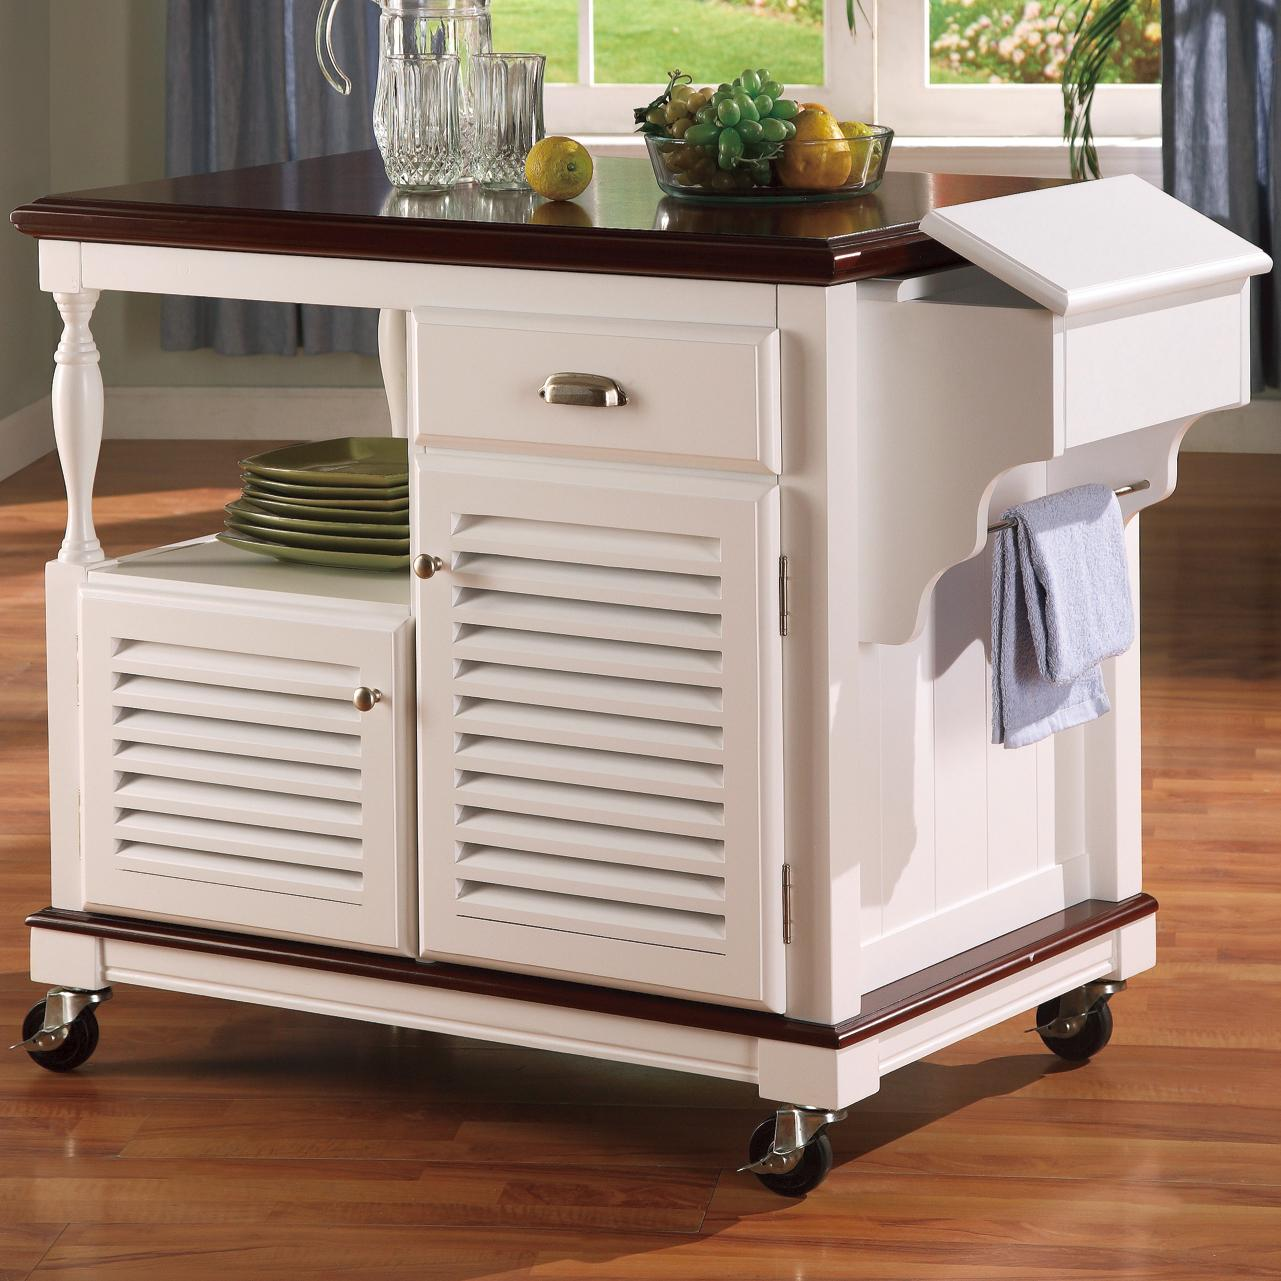 Kitchen Carts Kitchen Cart by Coaster at Northeast Factory Direct